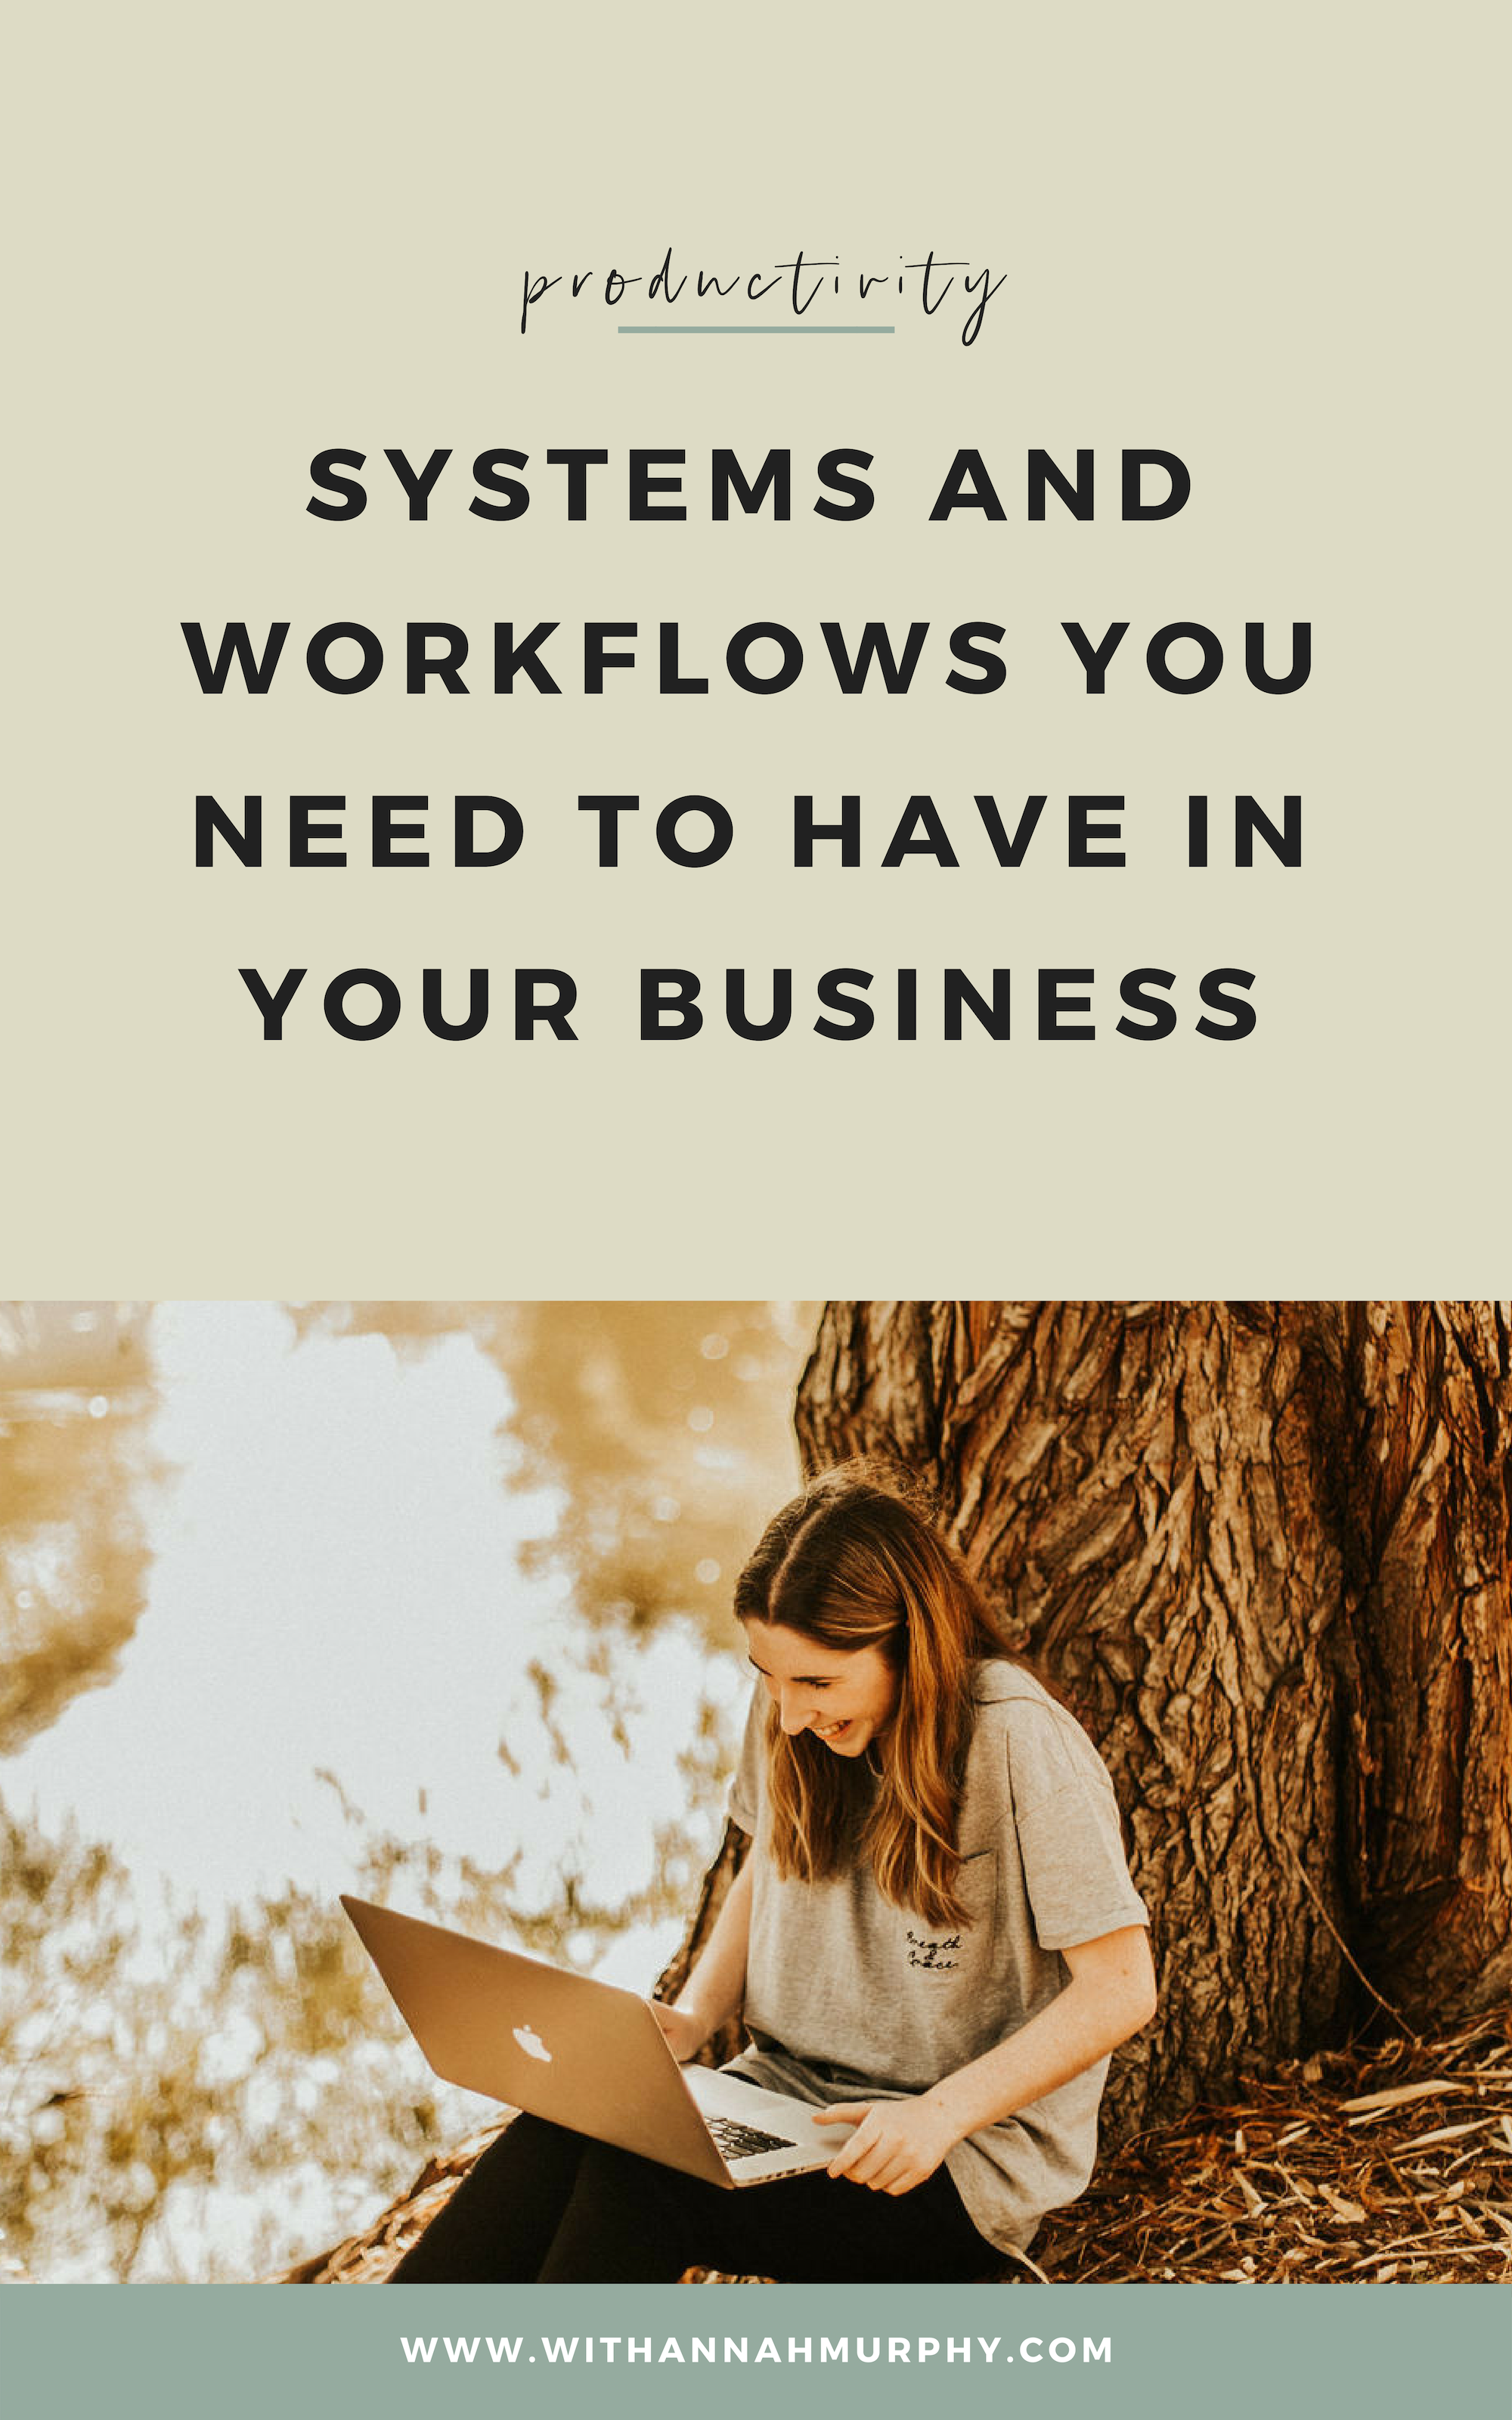 Systems and workflows you need to have in your business | With Hannah Murphy #creativeresources #businesstips #systems